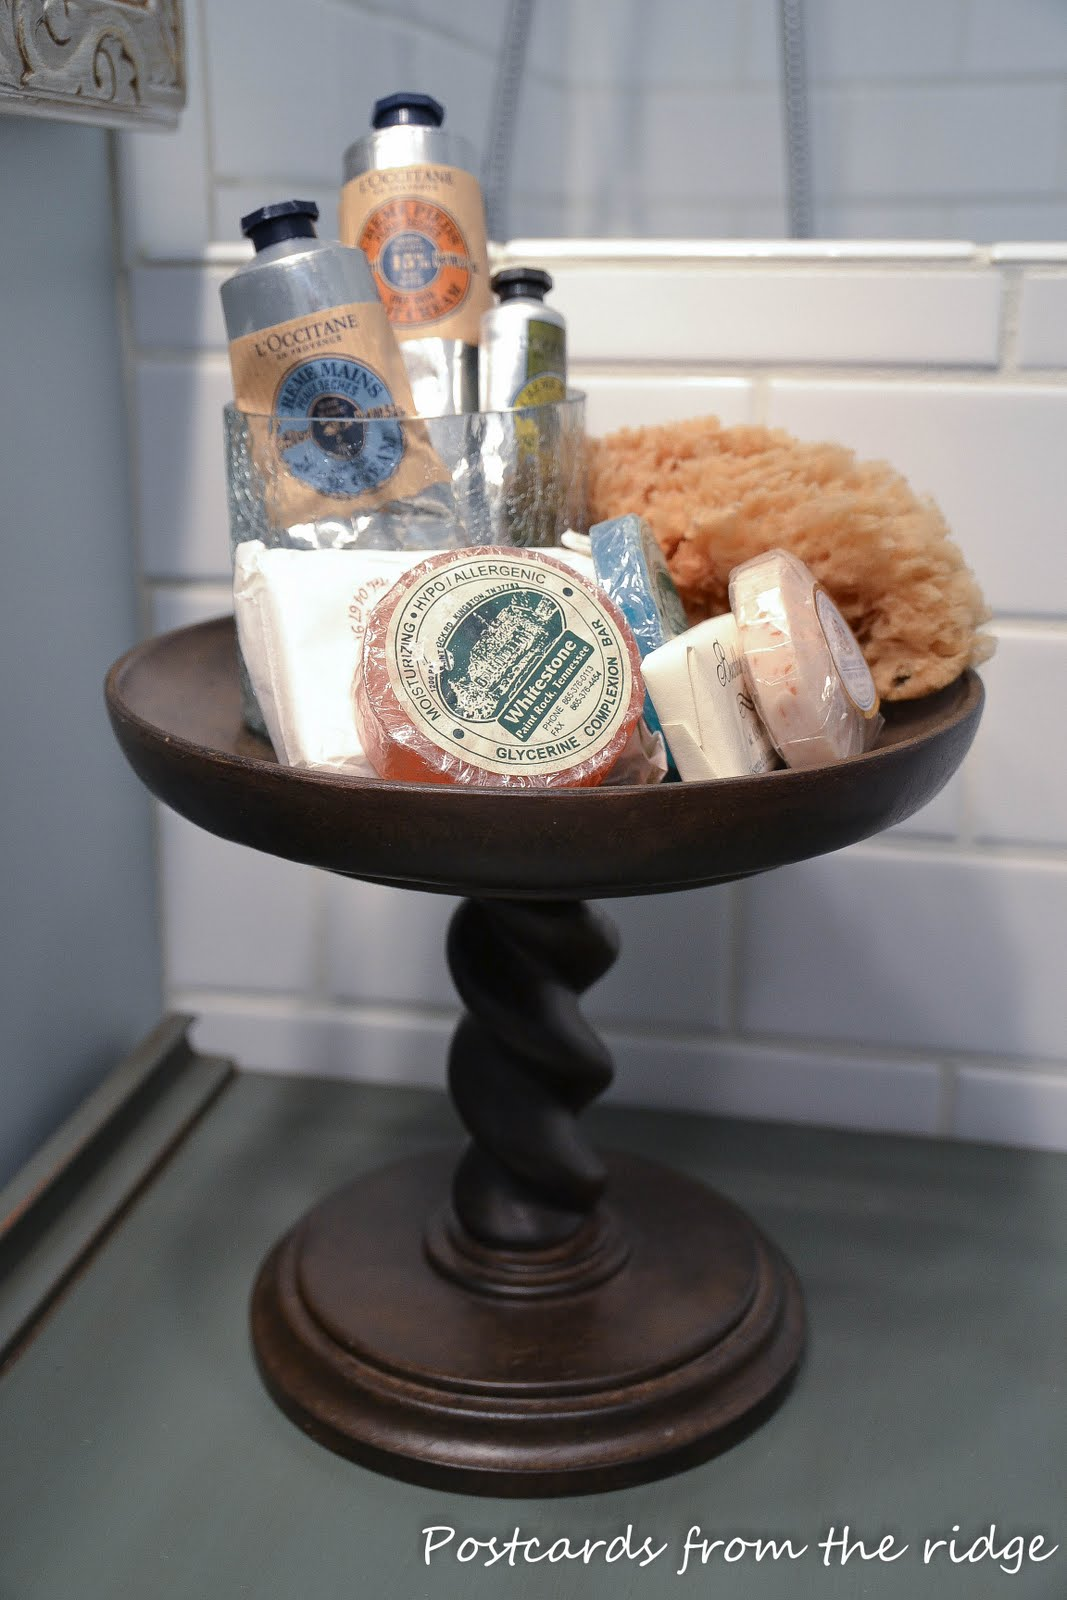 pedestal used for bathroom organization